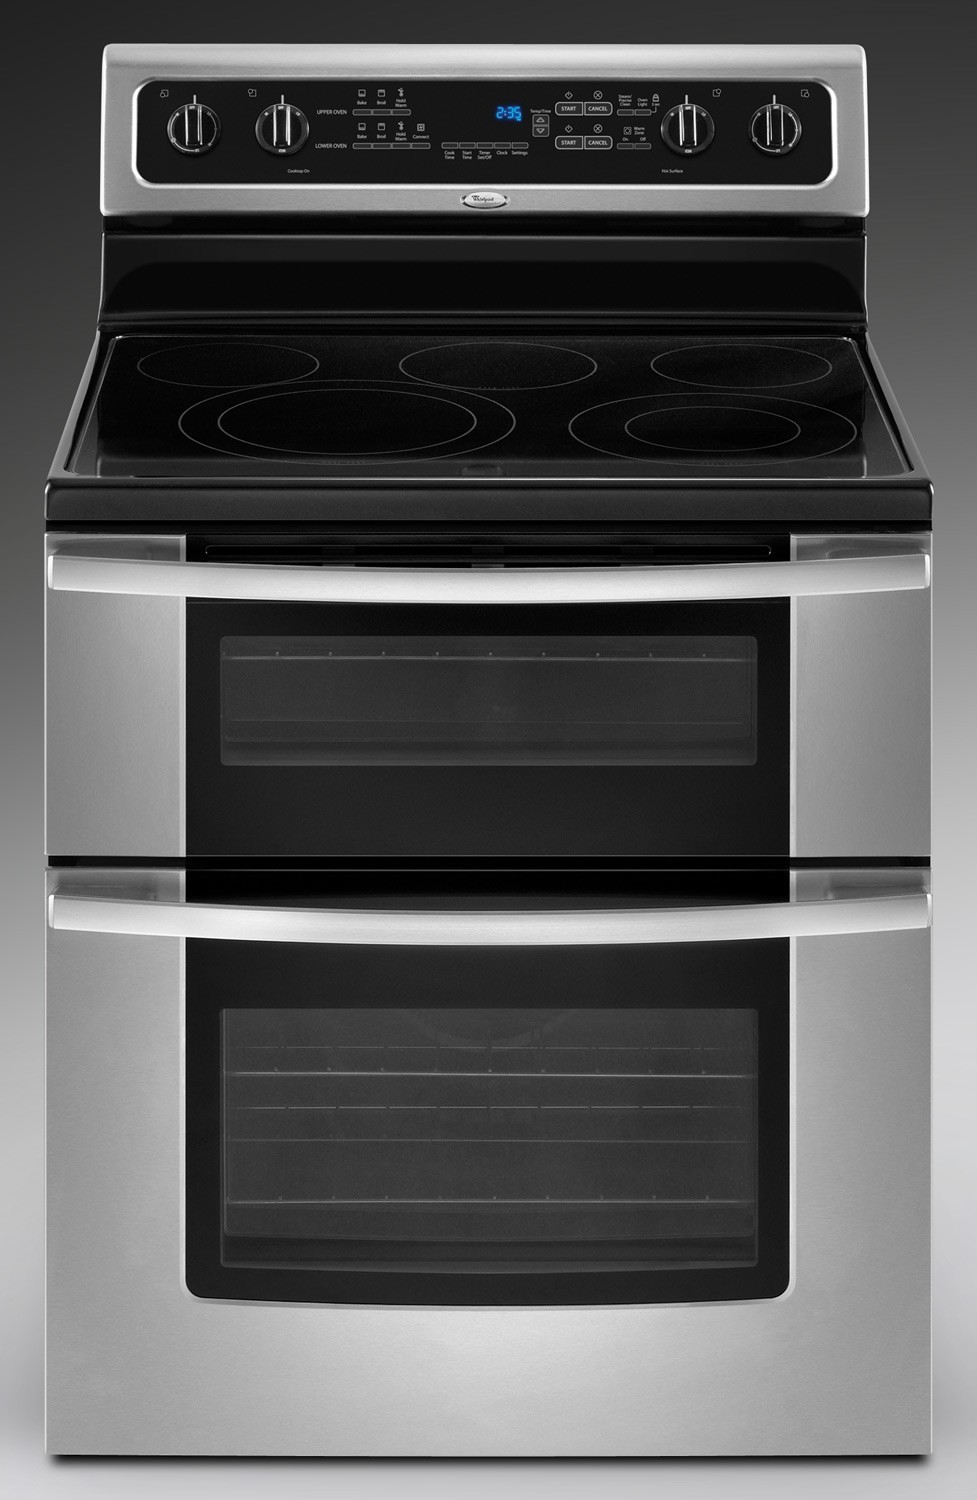 Whirlpool Ygge390lxs Canadian Appliance